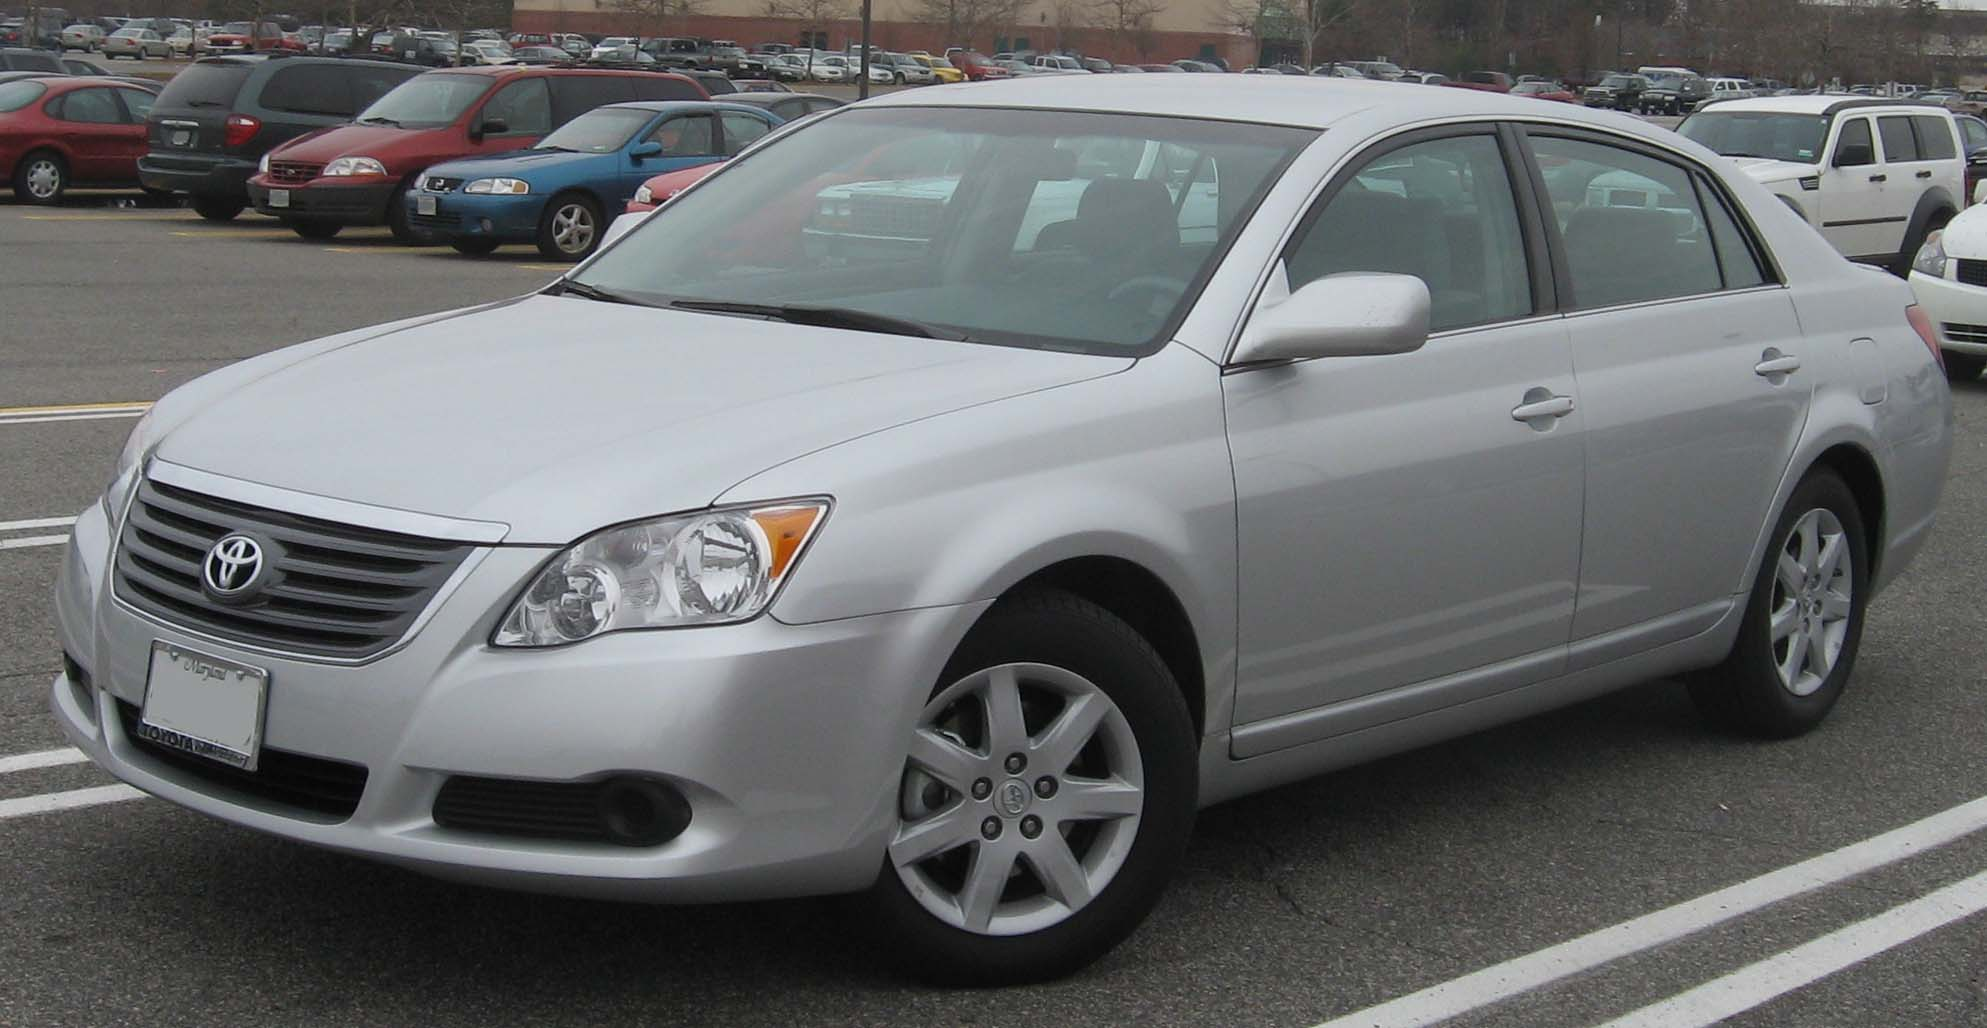 File:2008 Toyota Avalon XL.jpg - Wikimedia Commons